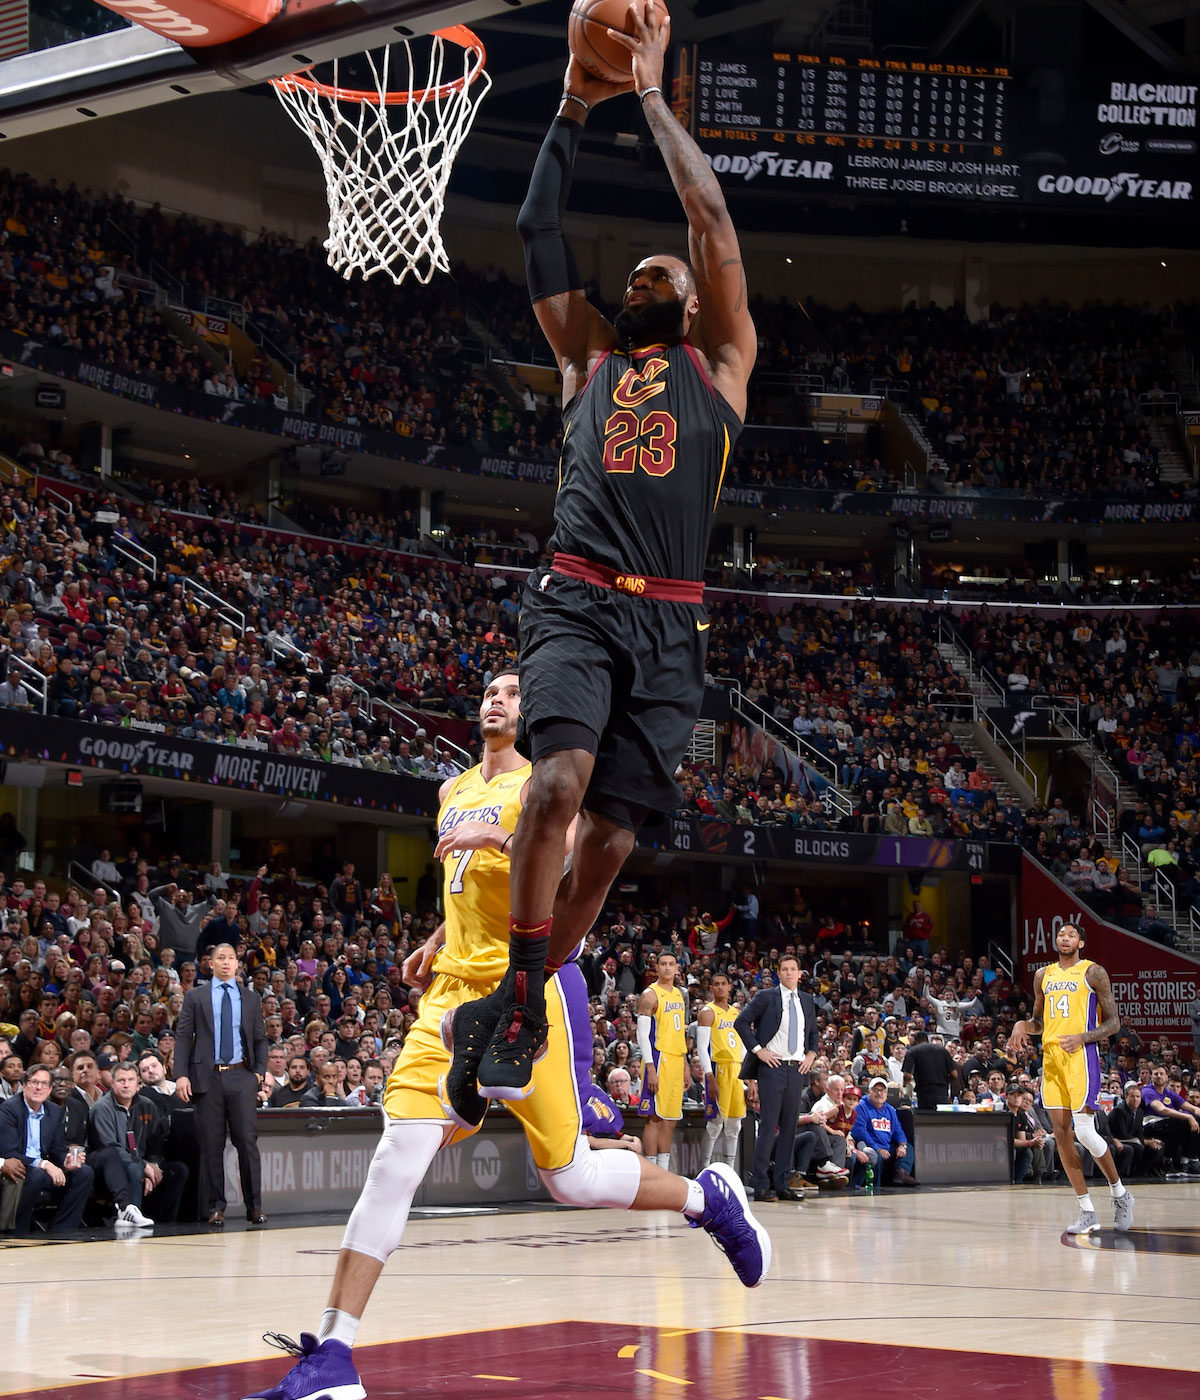 LeBron James #23 of the Cleveland Cavaliers dunks the ball against the Los Angeles Lakers on December 14, 2017 at Quicken Loans Arena in Cleveland, Ohio.